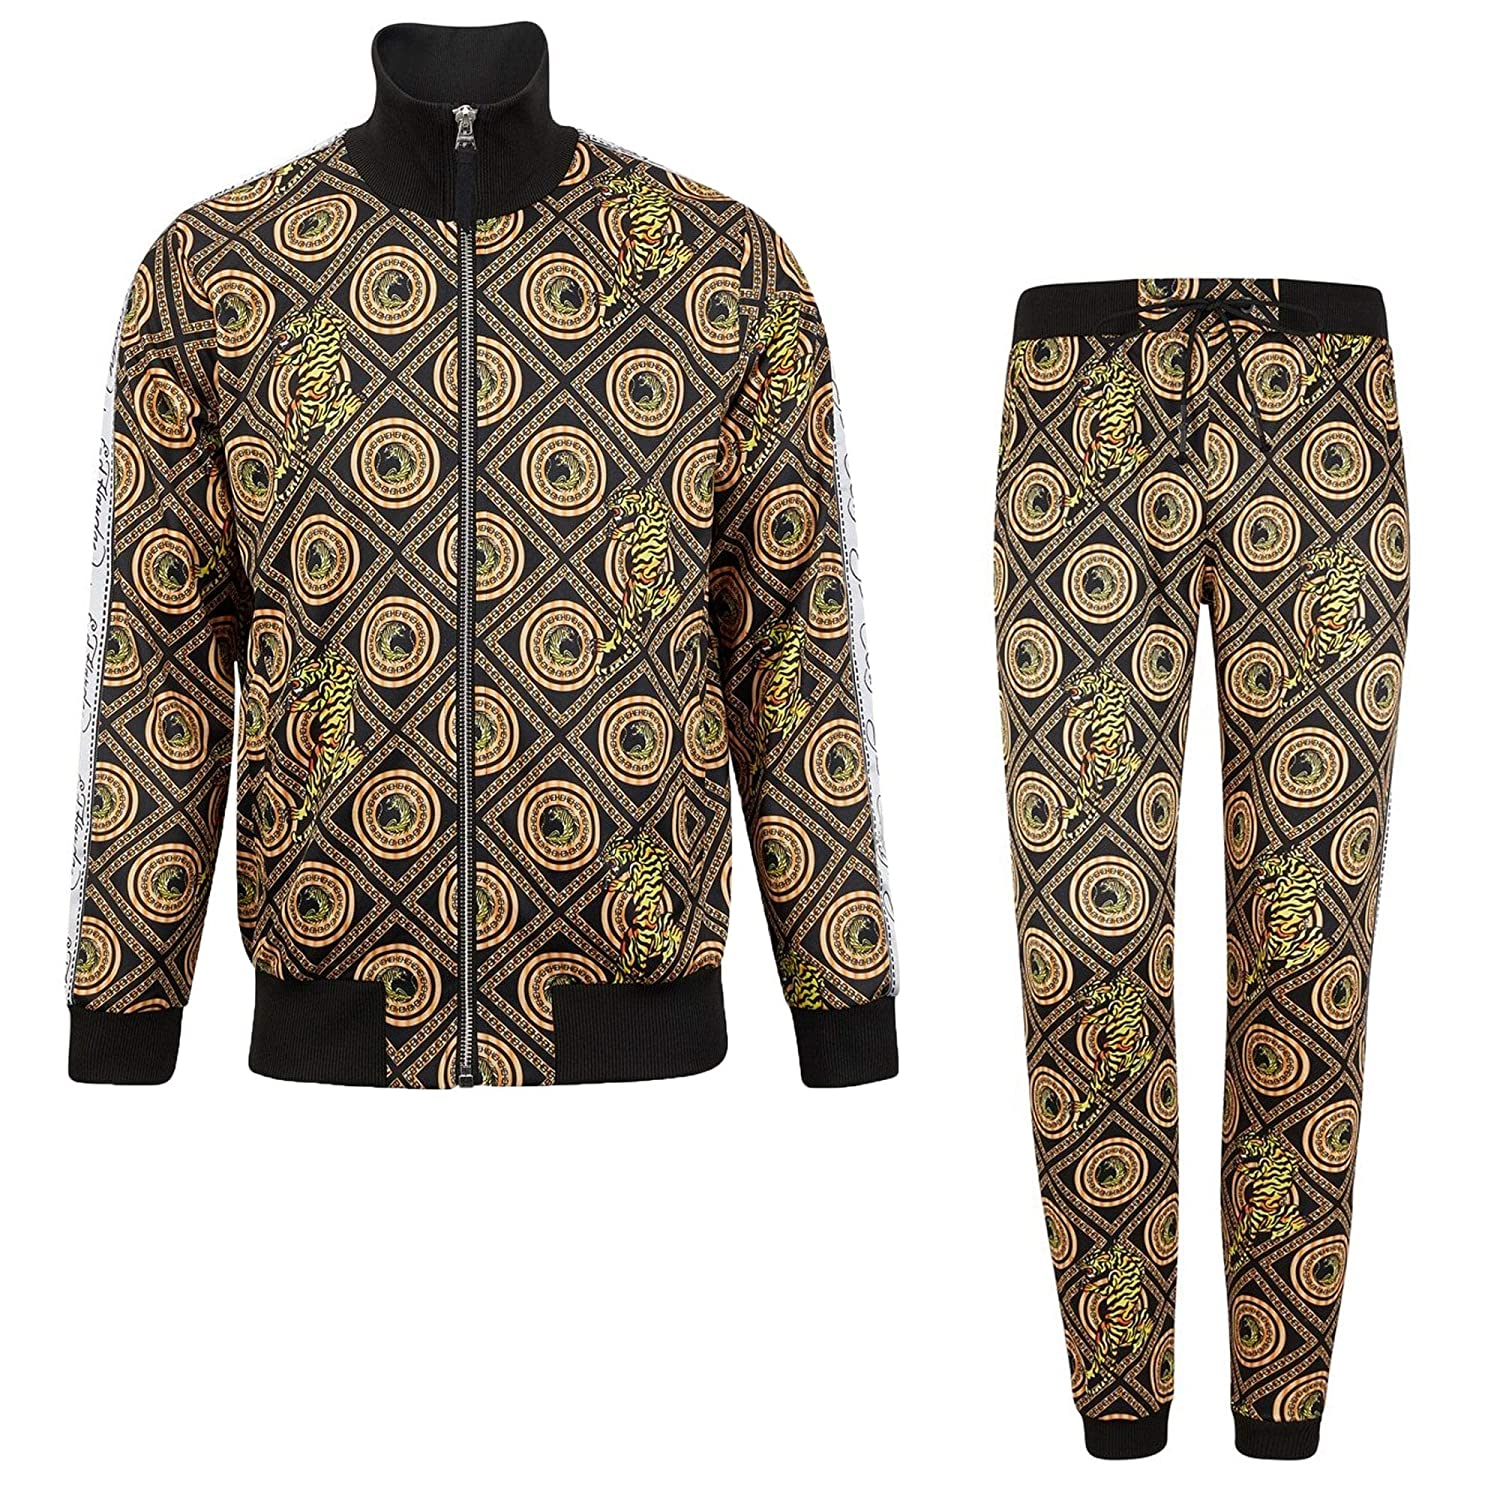 Black L Hardy Tiger Crouch Baroque Black Zip Up Tracksuit Ed Poly